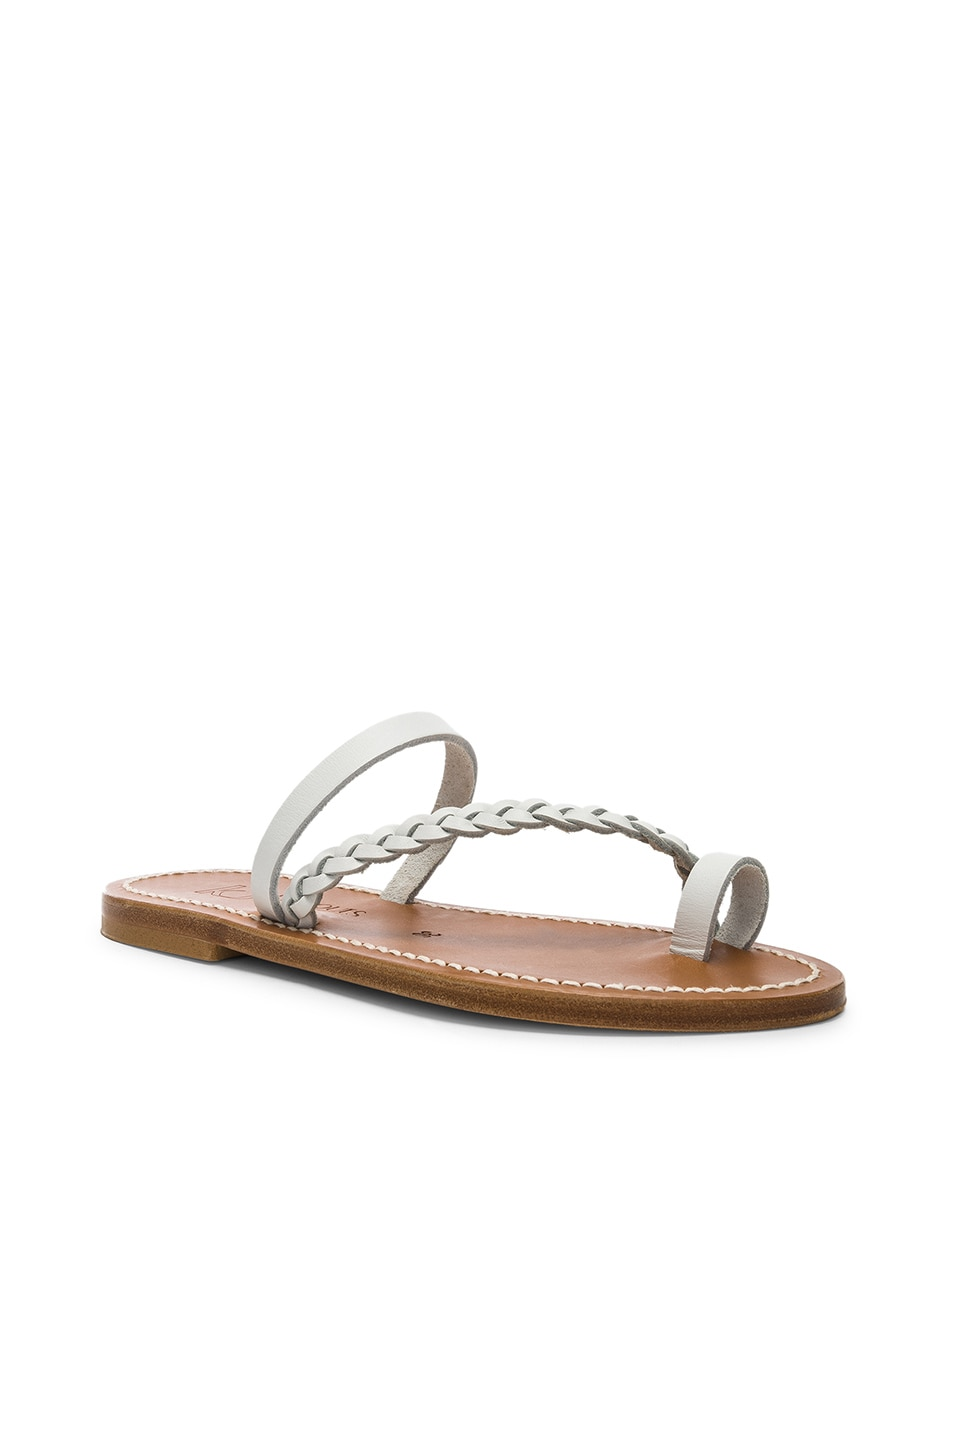 Image 2 of K Jacques Isaure Sandal in Pul Blanc